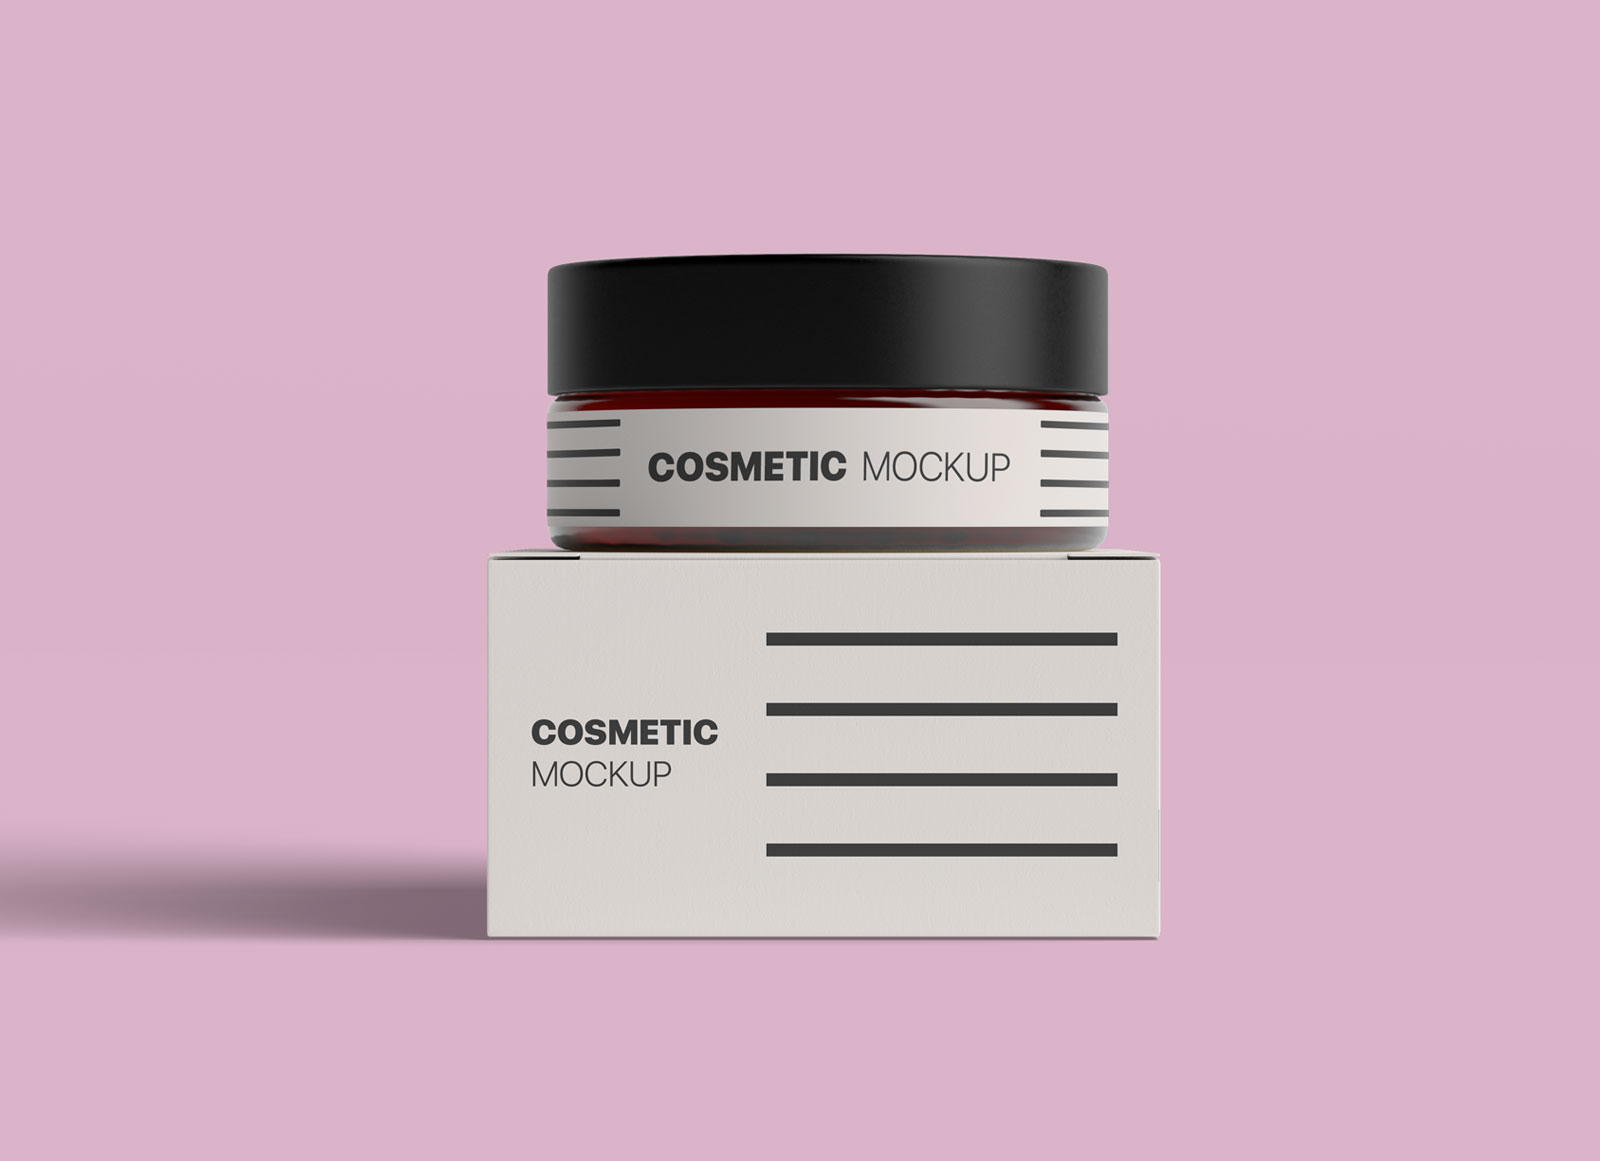 Free-Cosmetic-Bottle-&-Box-Packaging-Mockup-PSD-File